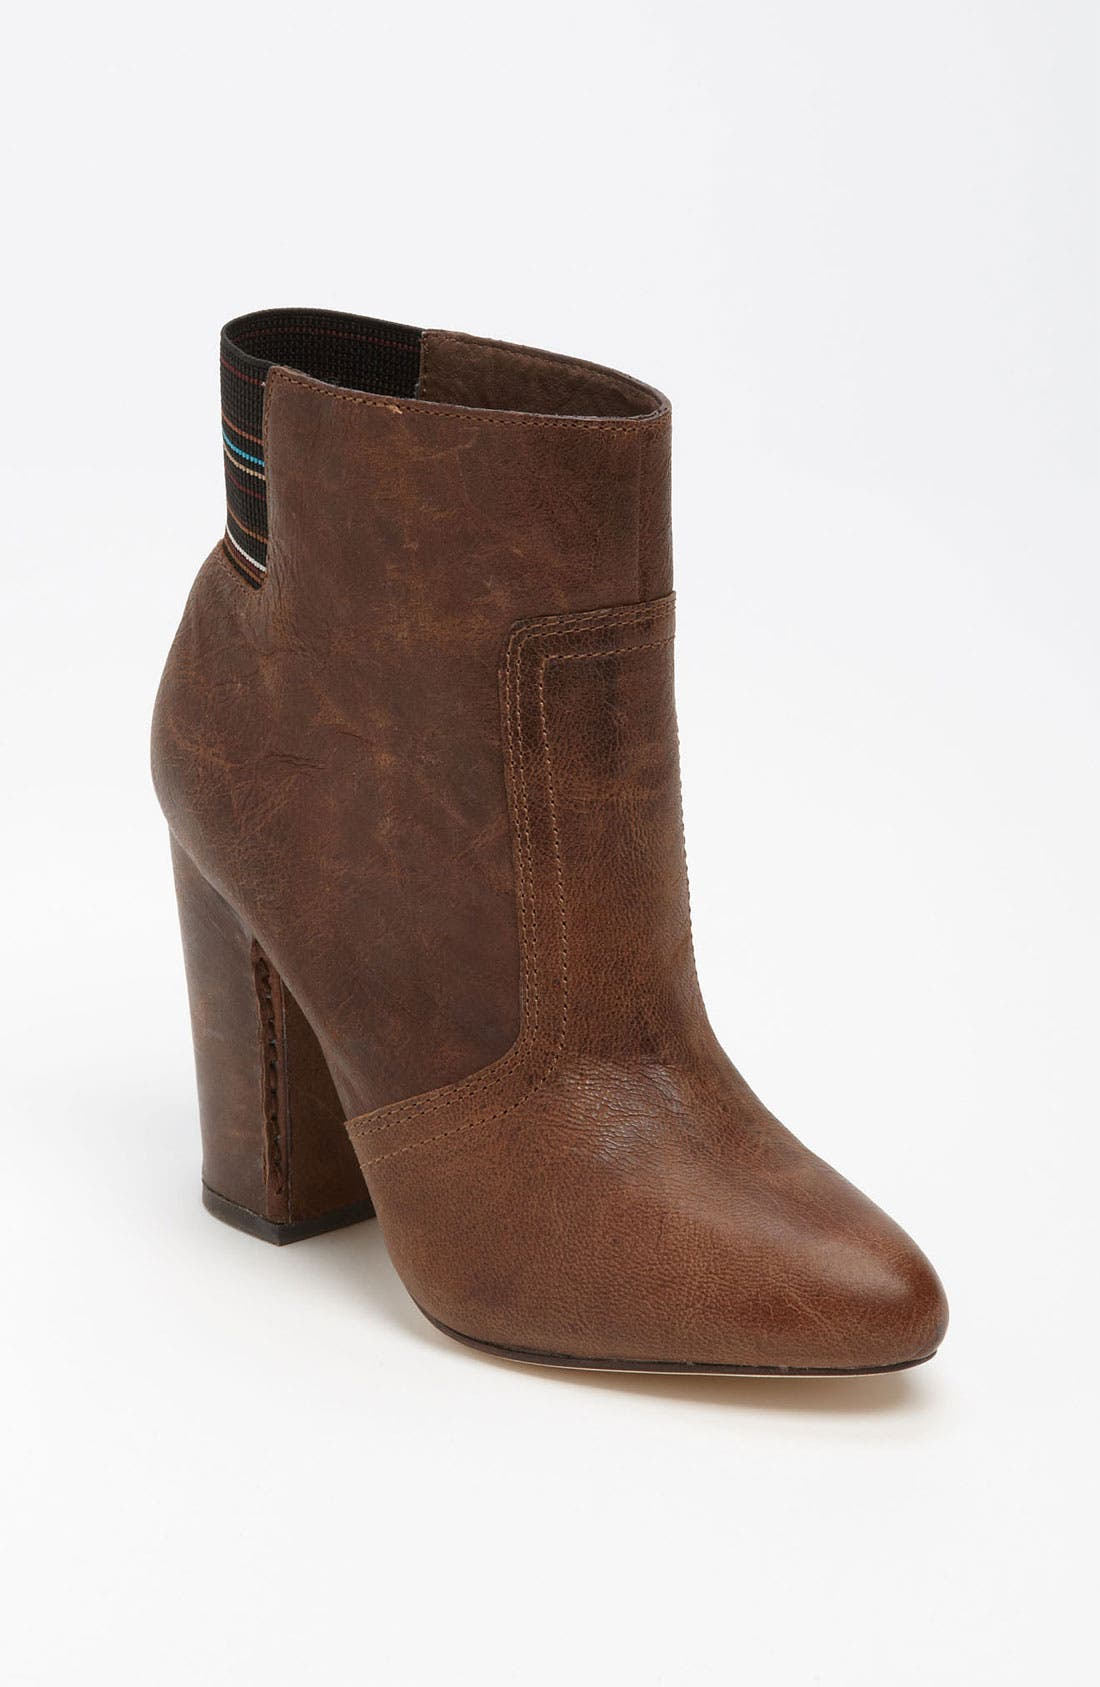 Alternate Image 1 Selected - Joe's 'Faye' Leather Ankle Boot